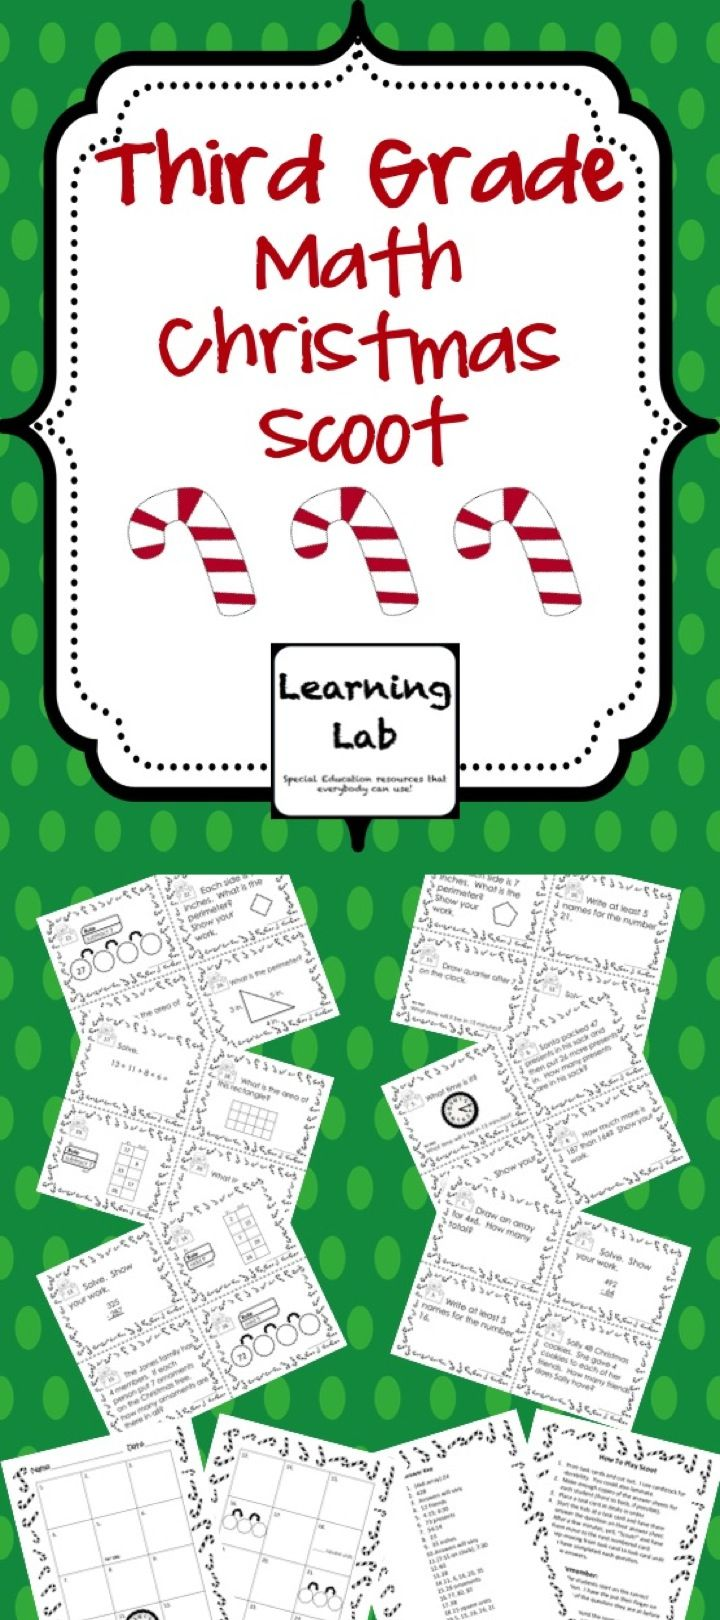 Uncategorized Everyday Math Worksheets 3rd Grade 188 best everyday math images on pinterest 3rd grade christmas scoot